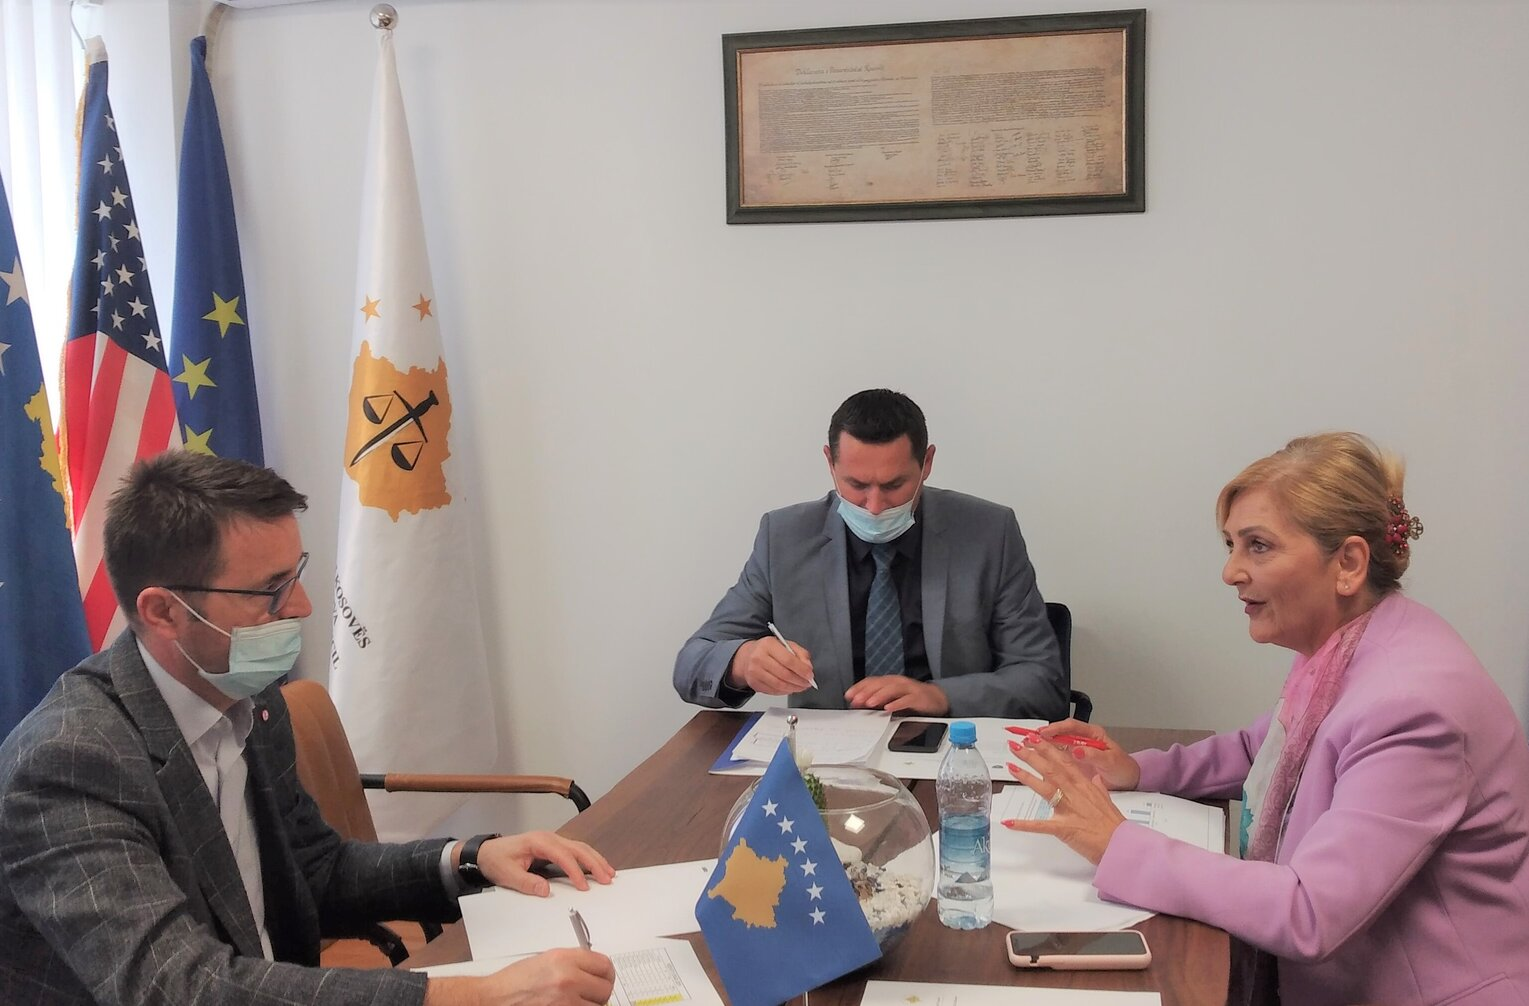 Meeting of the Working Group for the Supervision of the Unit for Combating Corruption and Economic Crimes